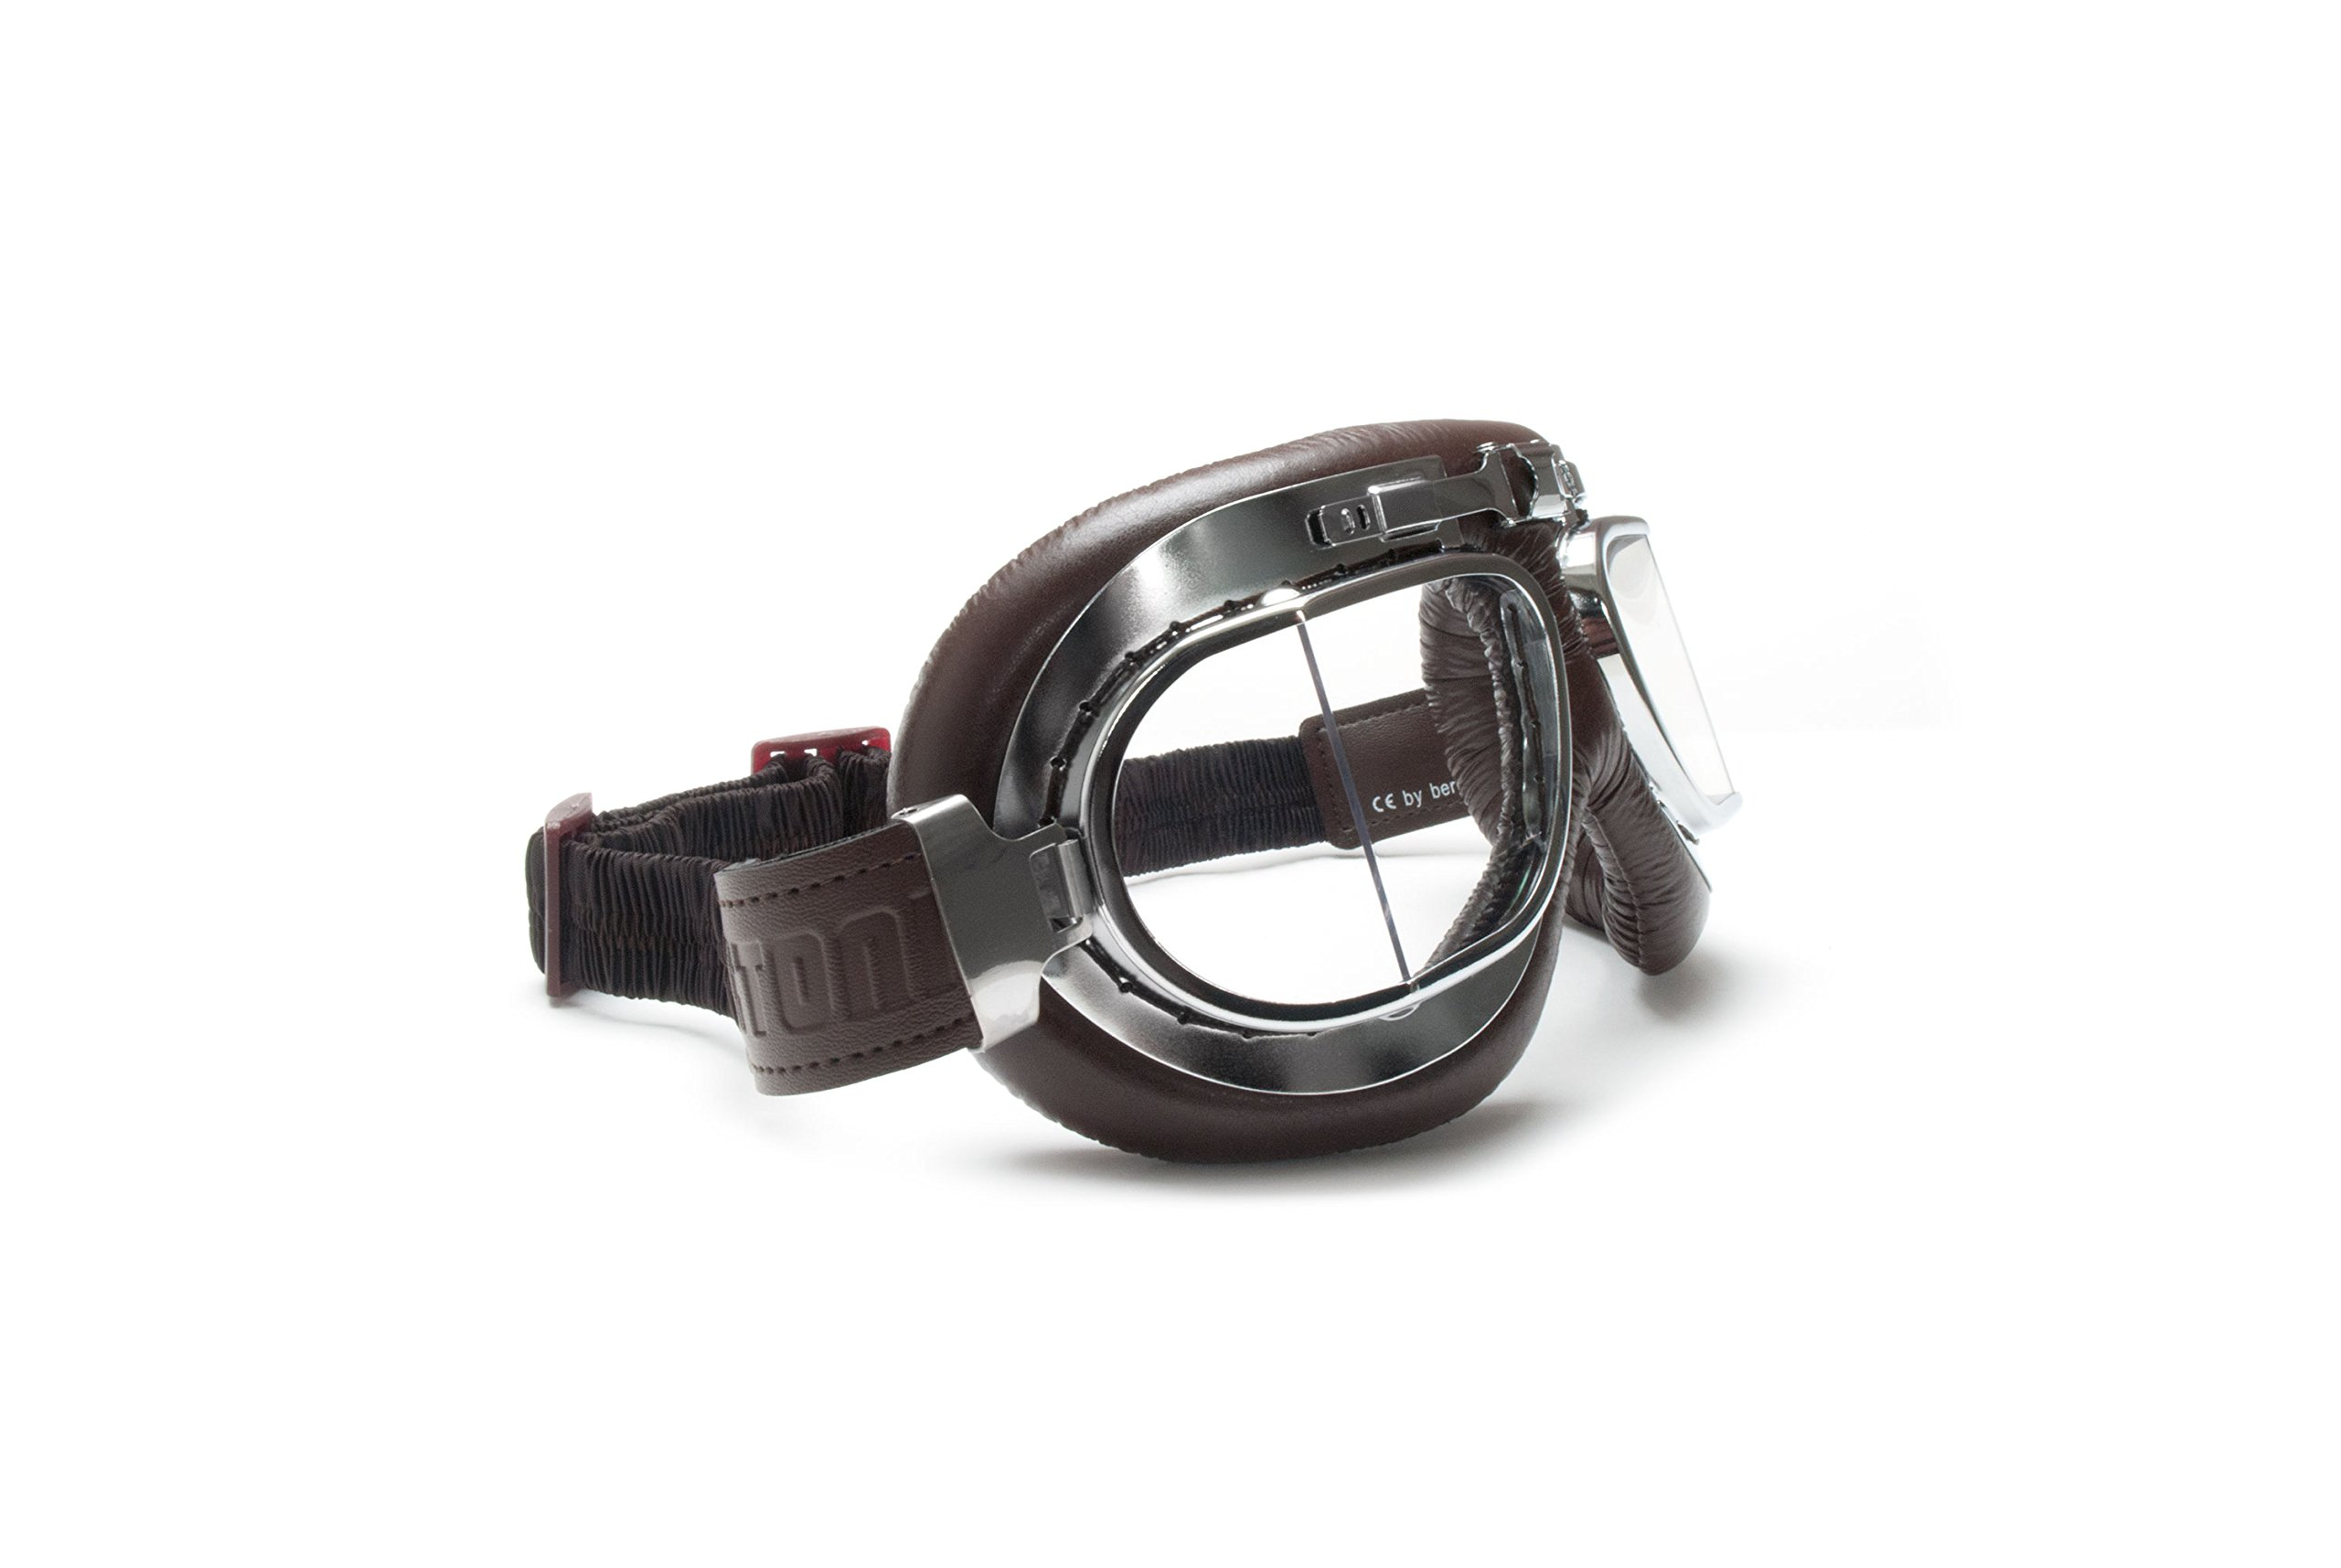 Vintage Motorcycle Goggles with Antifog and Anticrash Squared Lenses - Chromed Steel Frame - by Bertoni Italy - AF193CRB Brown - Motorbike Aviator Helmets Goggles